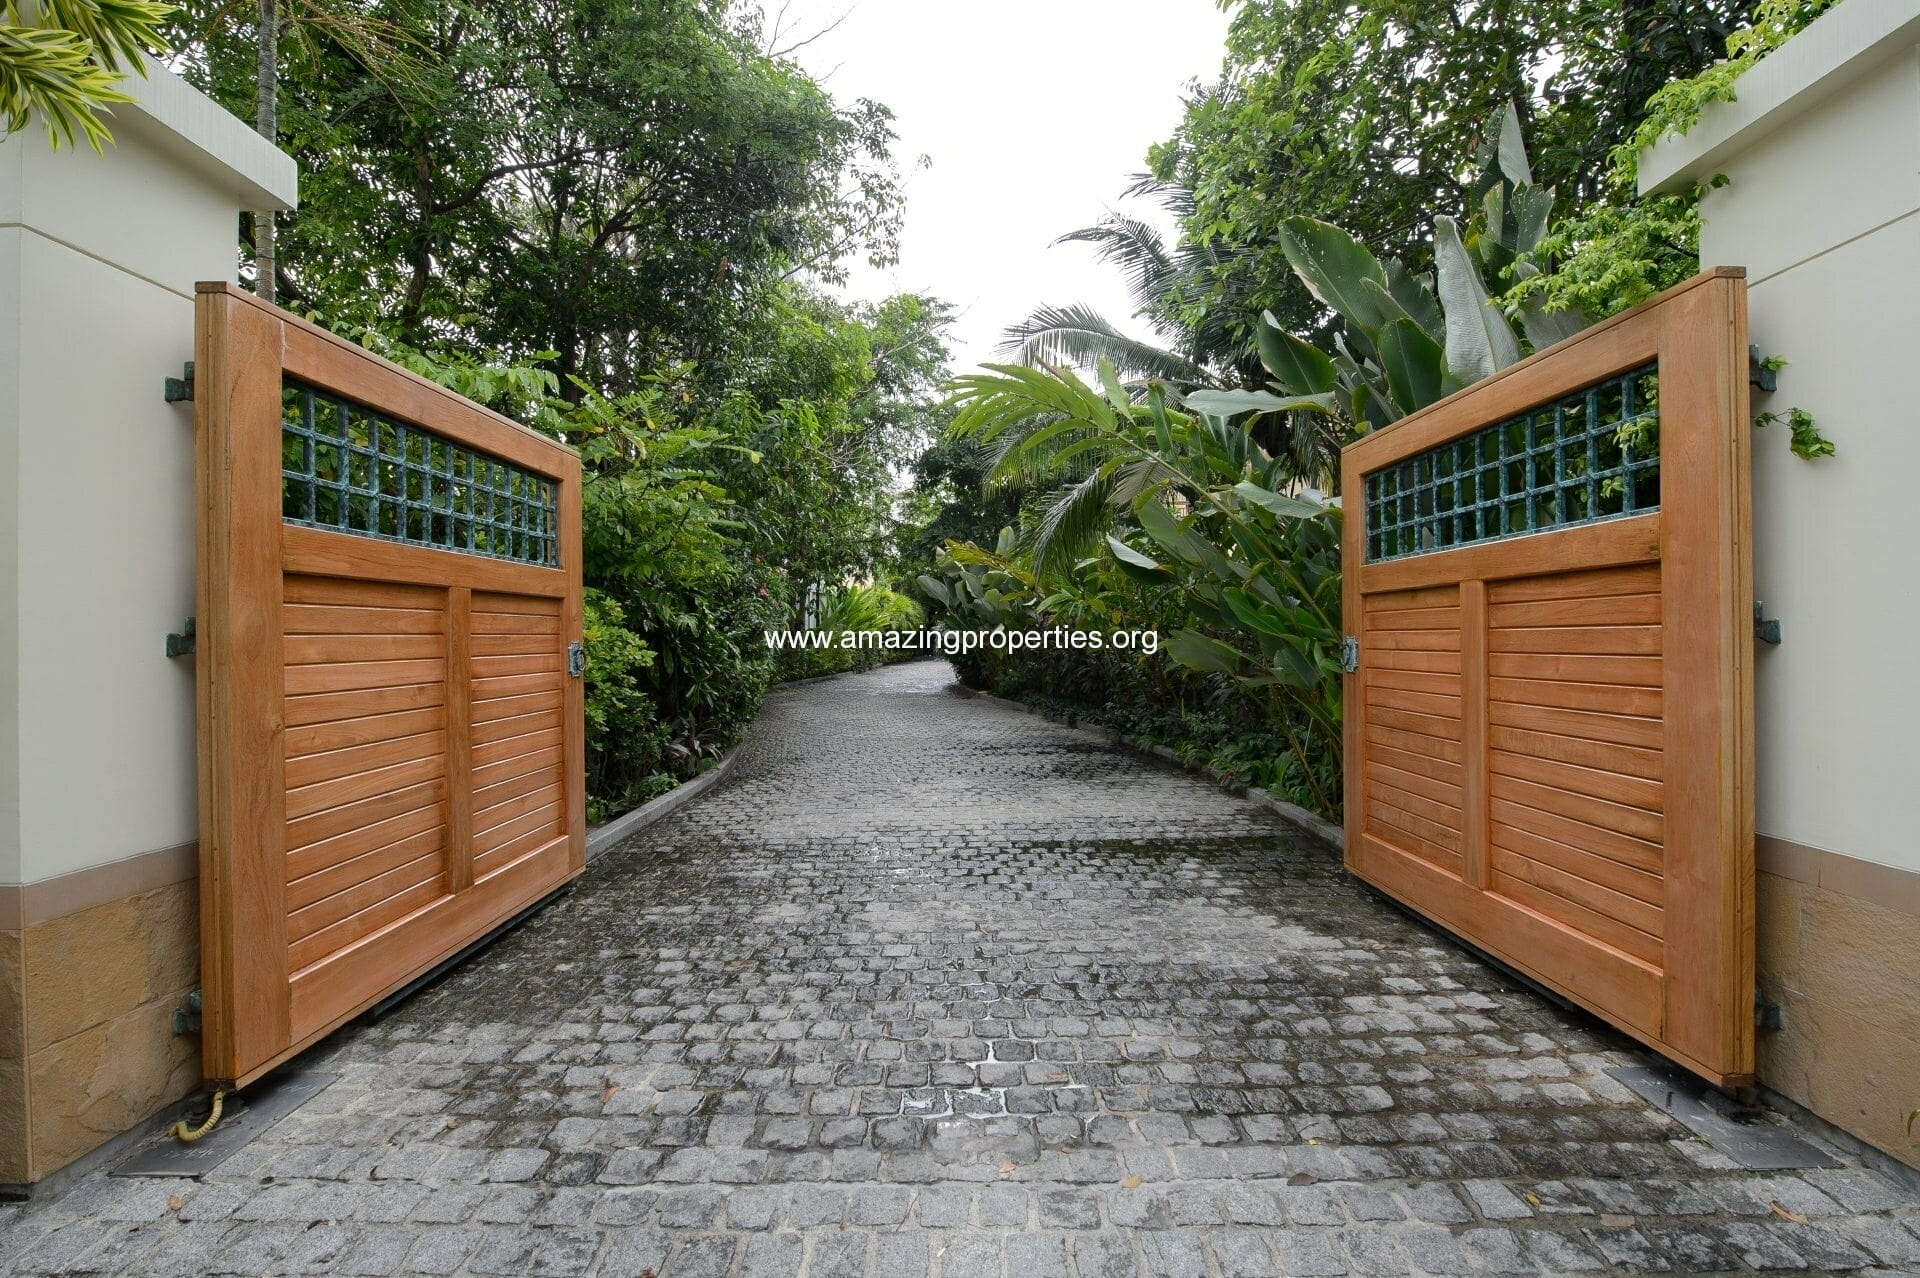 Entrance-Gate-Open-from-Driveway